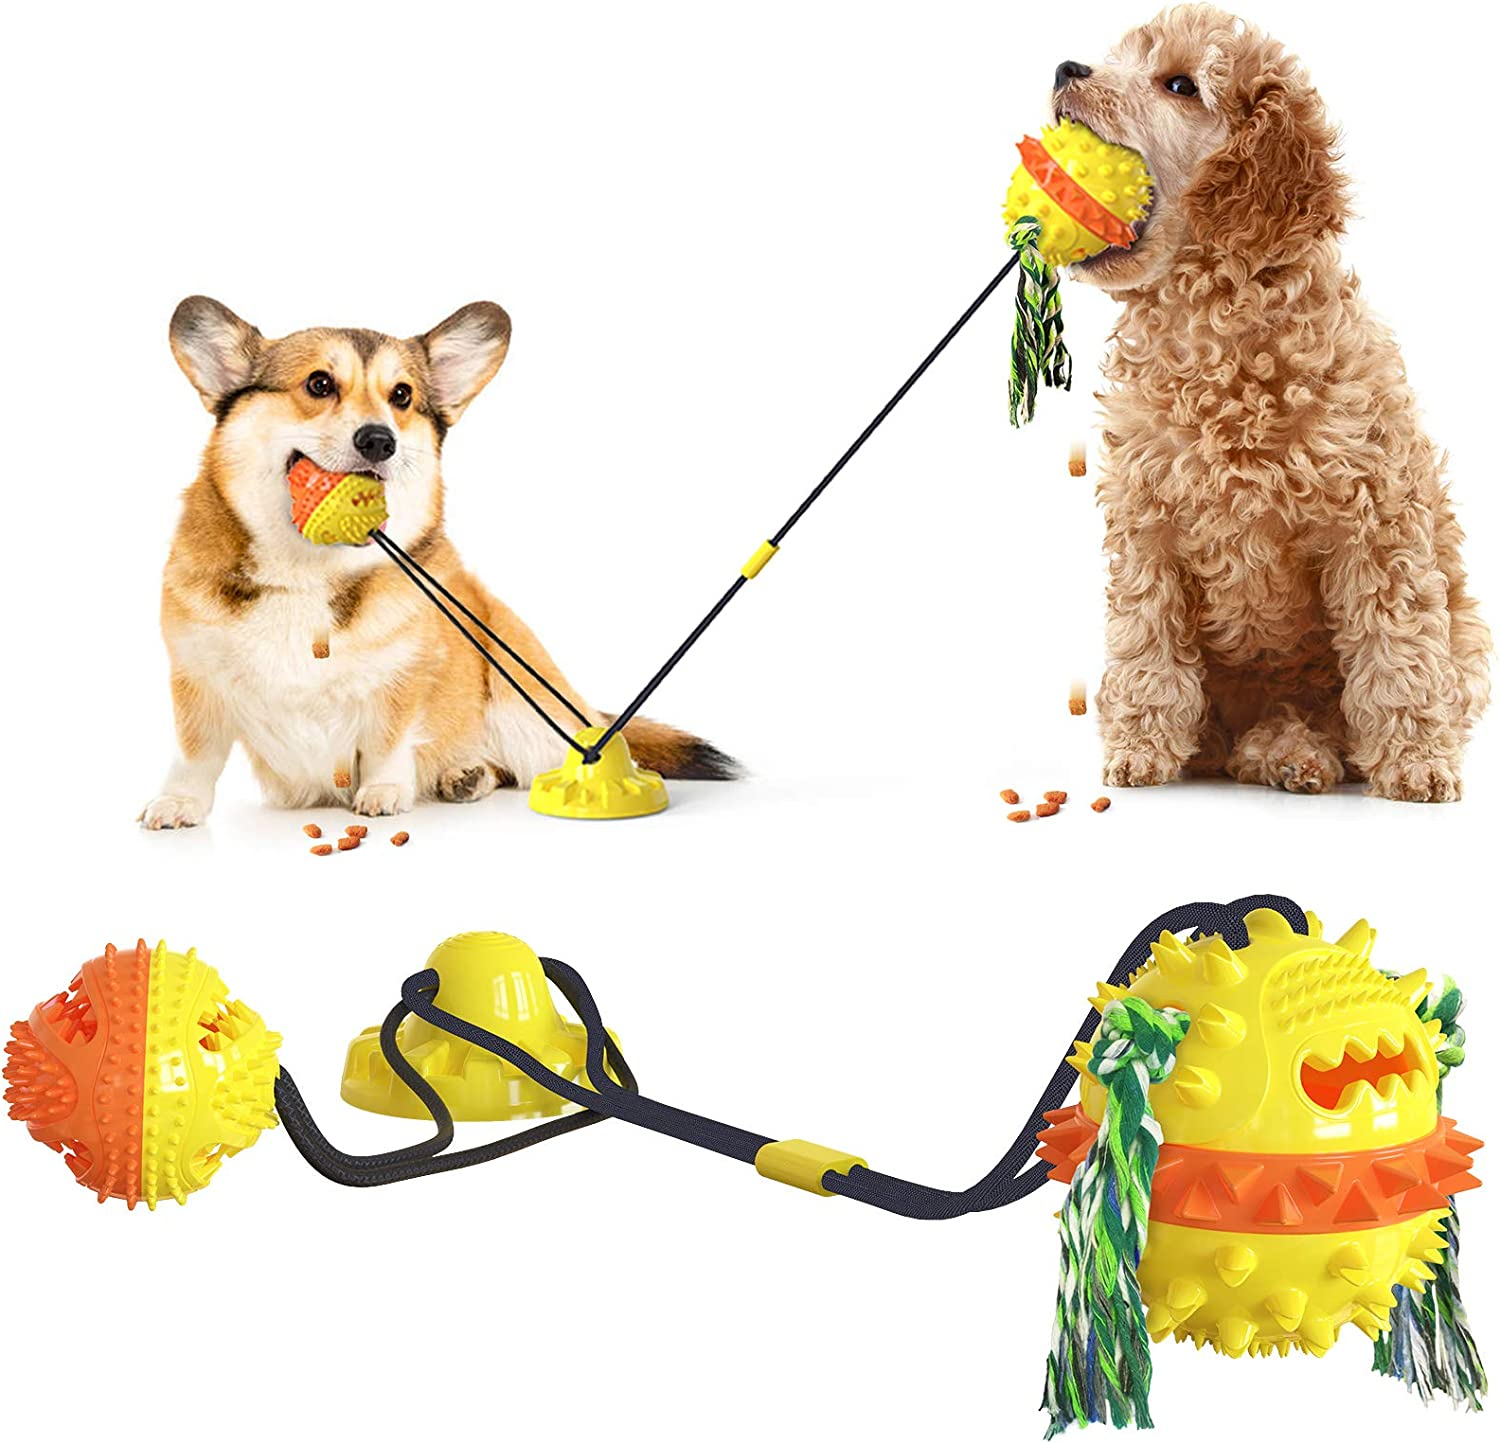 NO Reinforced Sucker Drawstring Ball Aggres Tug-of-War Toy Dog Sales of SALE items Free shipping on posting reviews from new works